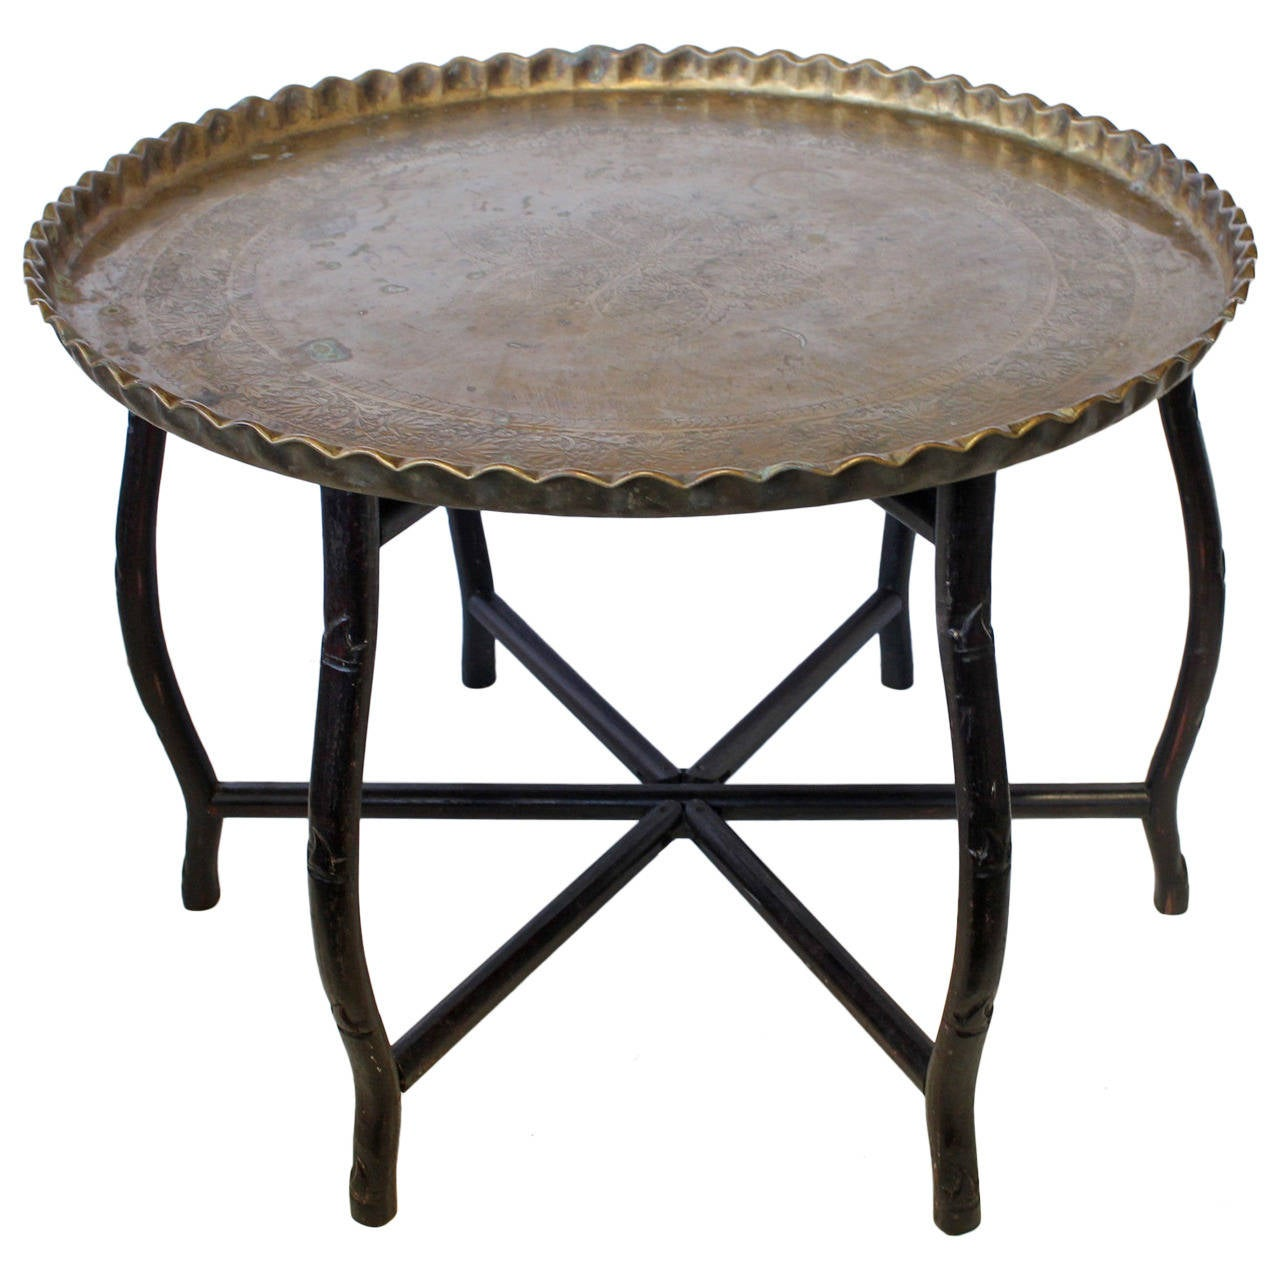 1920s large brass tray folding table for sale at 1stdibs. Black Bedroom Furniture Sets. Home Design Ideas